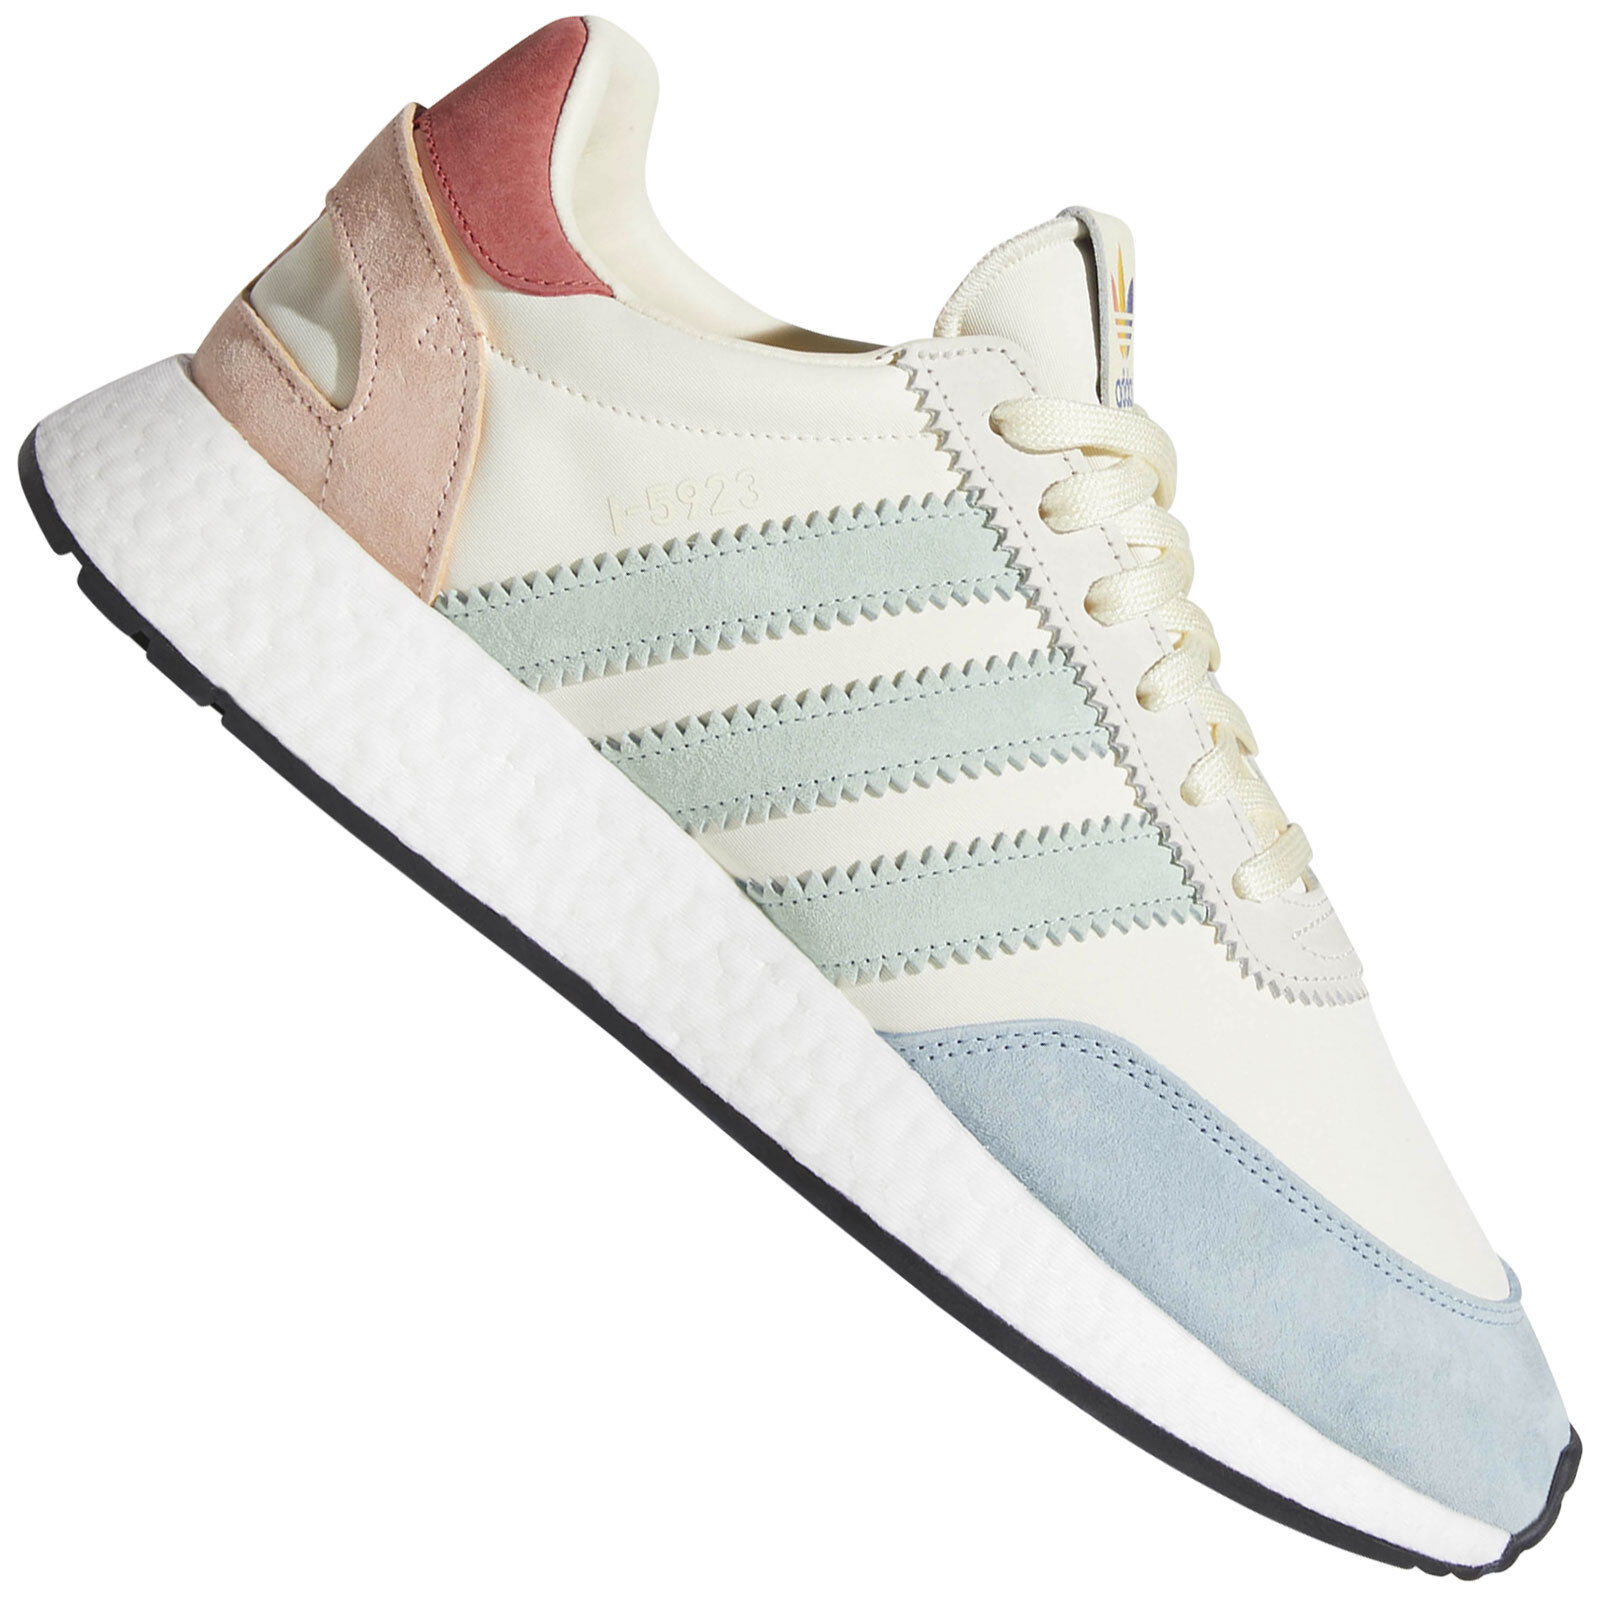 Adidas Originals I-5923 Iniki Pride Men's Women's Sneaker Lgbt-Pride shoes New